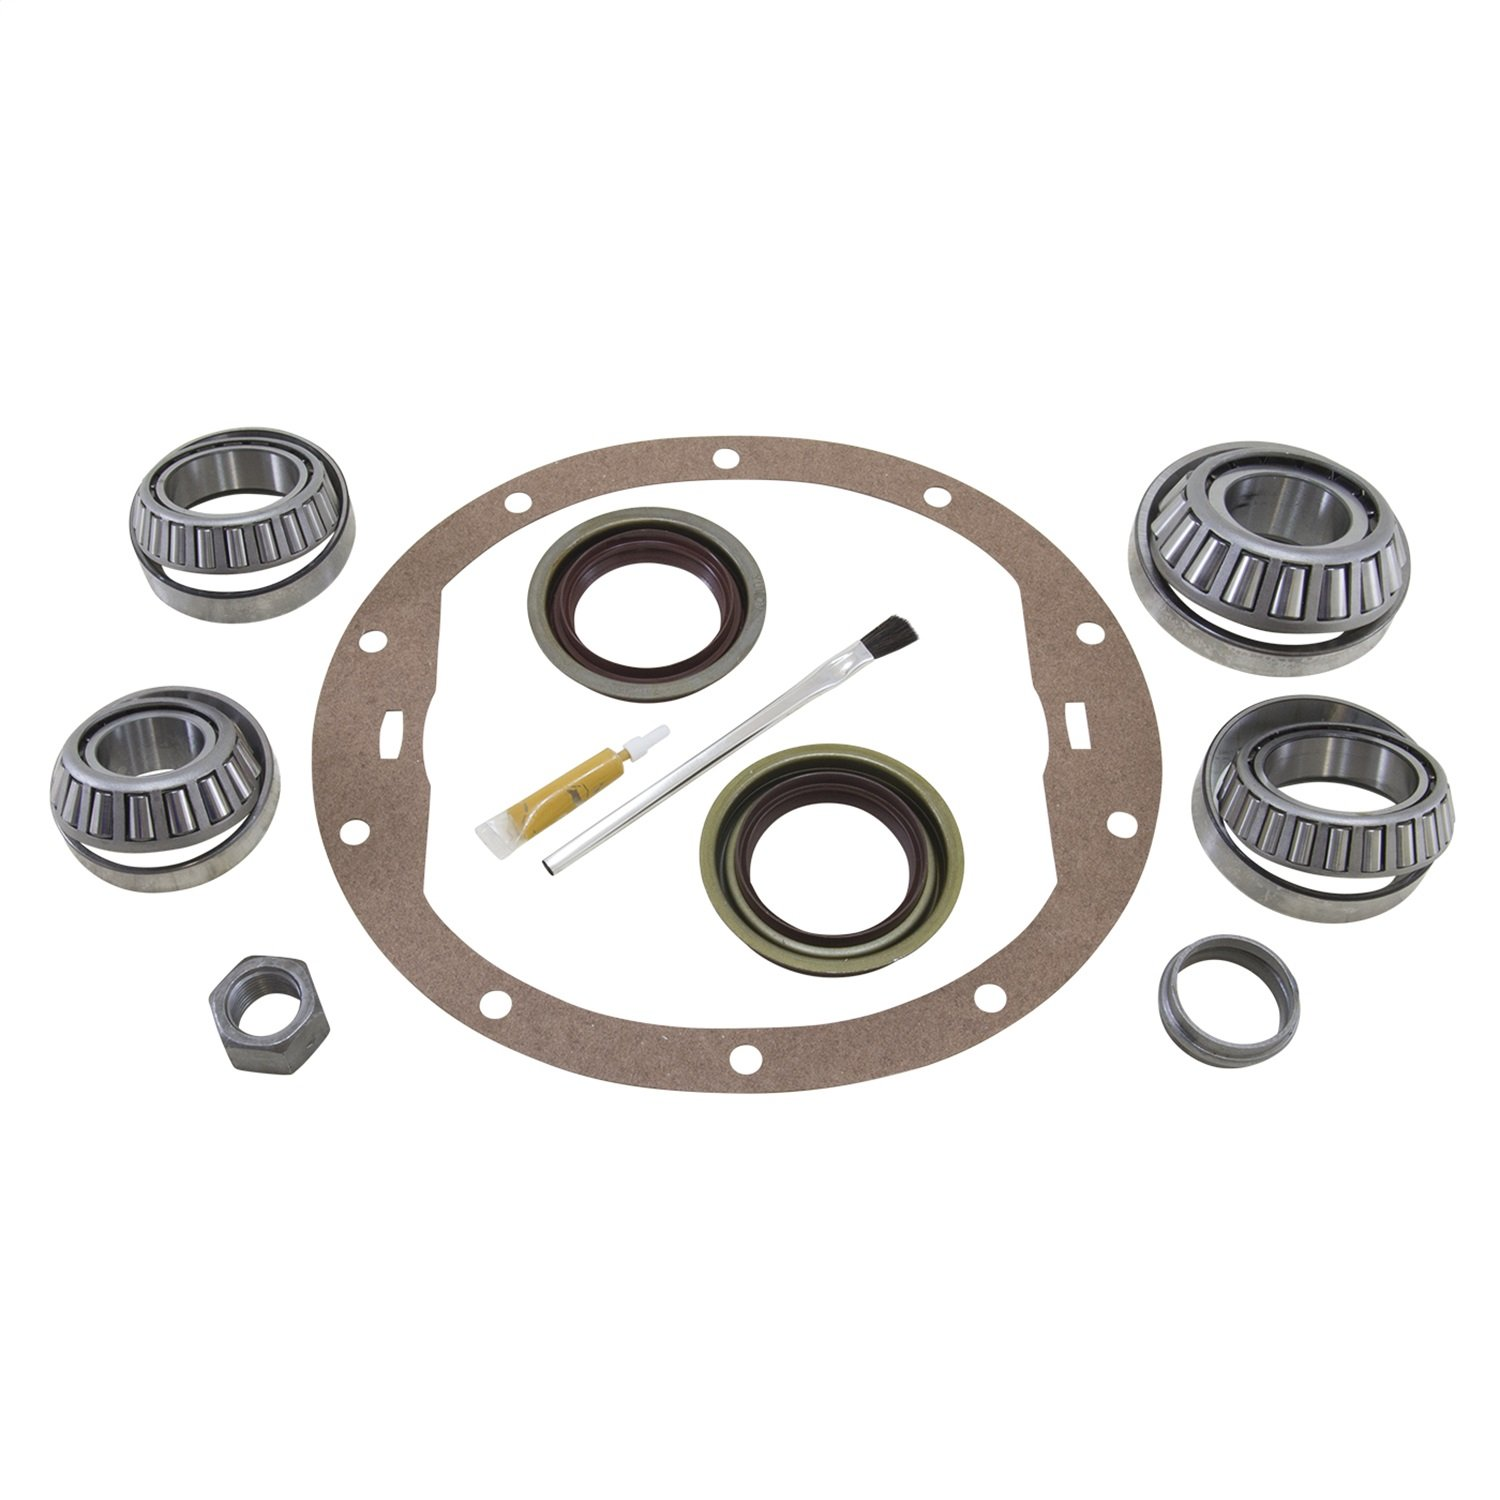 USA Standard Gear (ZBKGM8.6-B) Bearing Kit for GM 8.6'' Differential